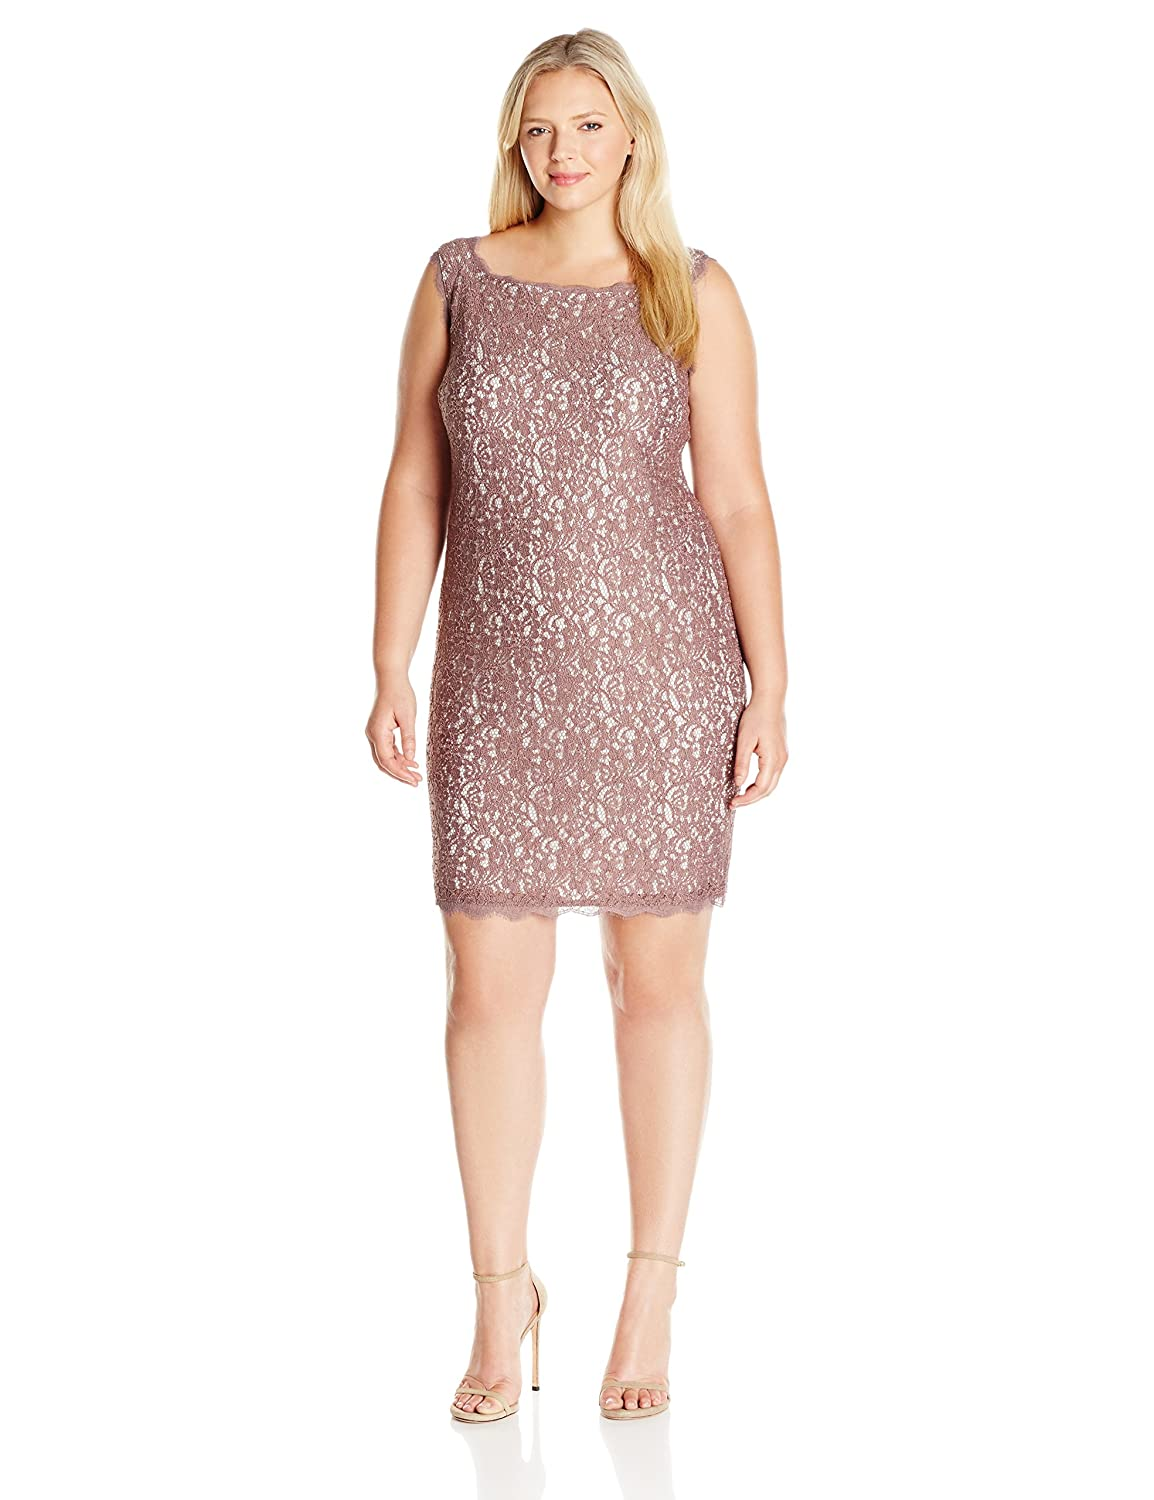 Adrianna Papell Women's Plus-Size Sleeveless Short Lace Cocktail Dress